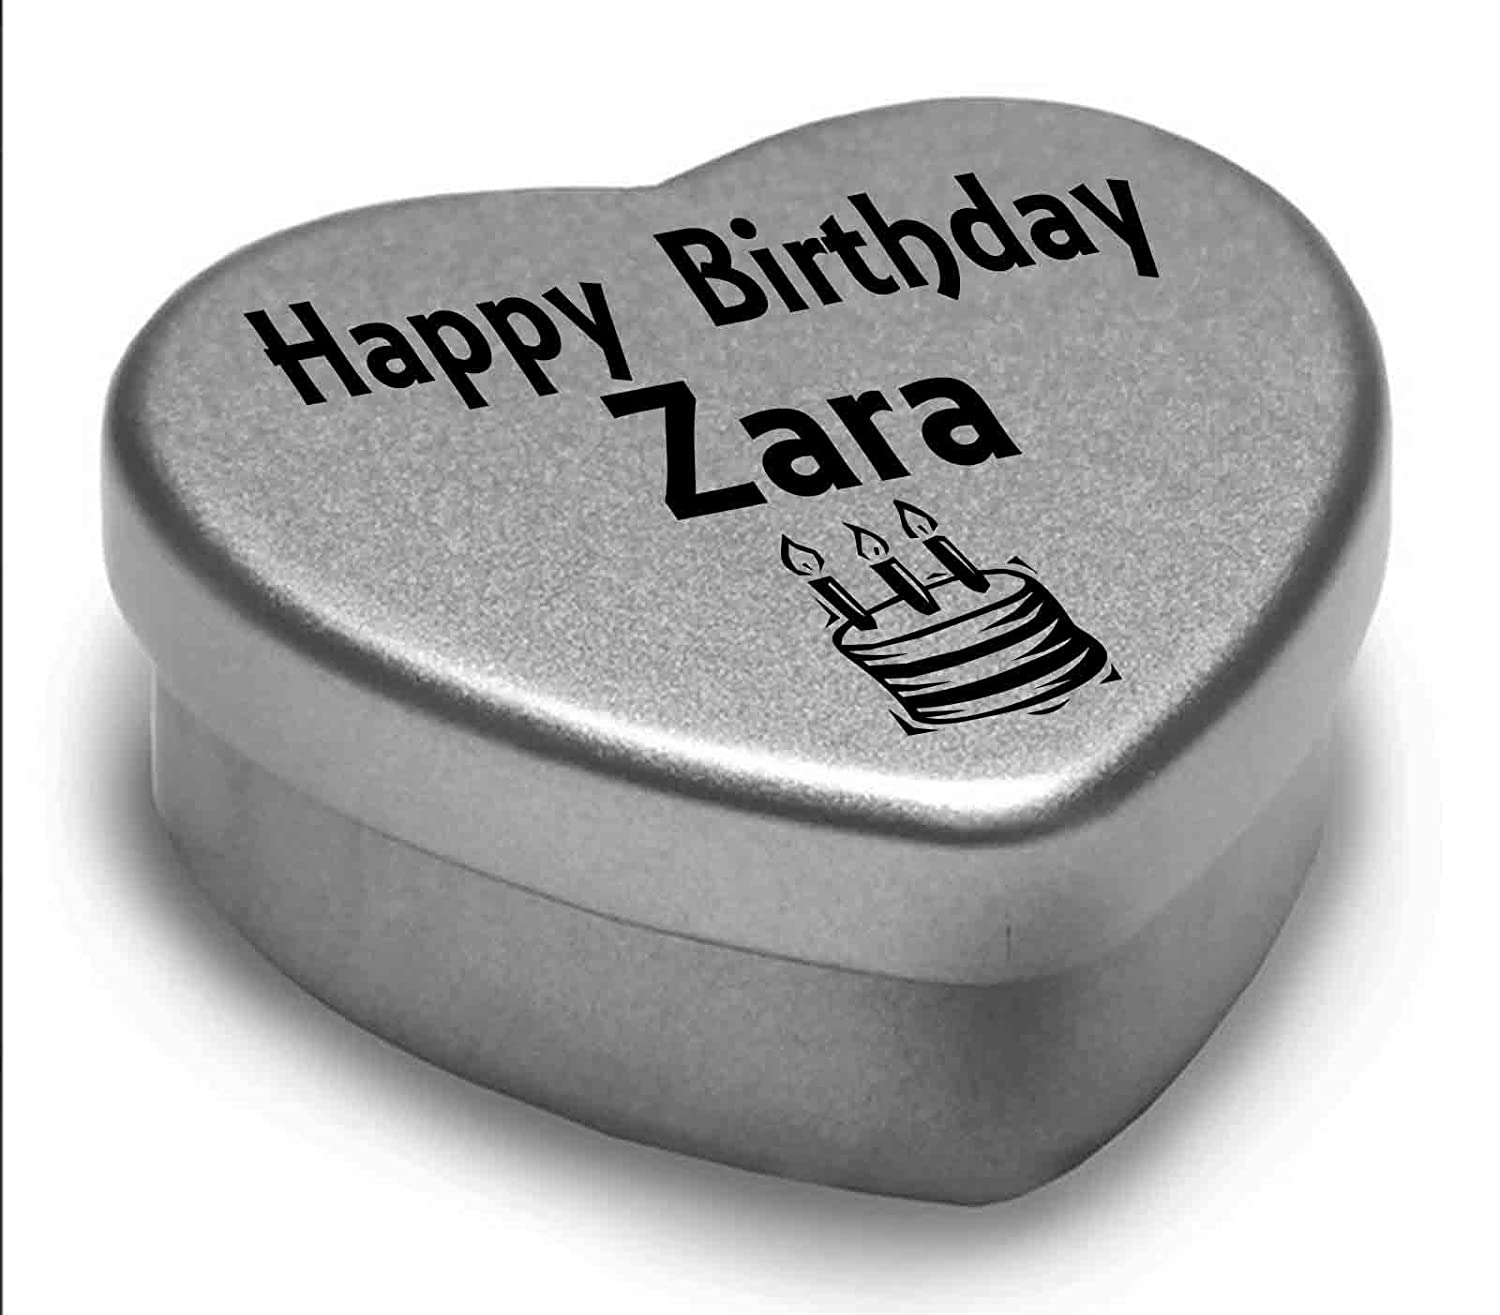 Happy Birthday Zara Mini Heart Tin Gift Present For Zara WIth Chocolates. Silver Heart Tin. Fits Beautifully in the Palm of Your Hand. Great Birthday Present To Show Somebody You are Thinking of Them. Gift In Can Ltd